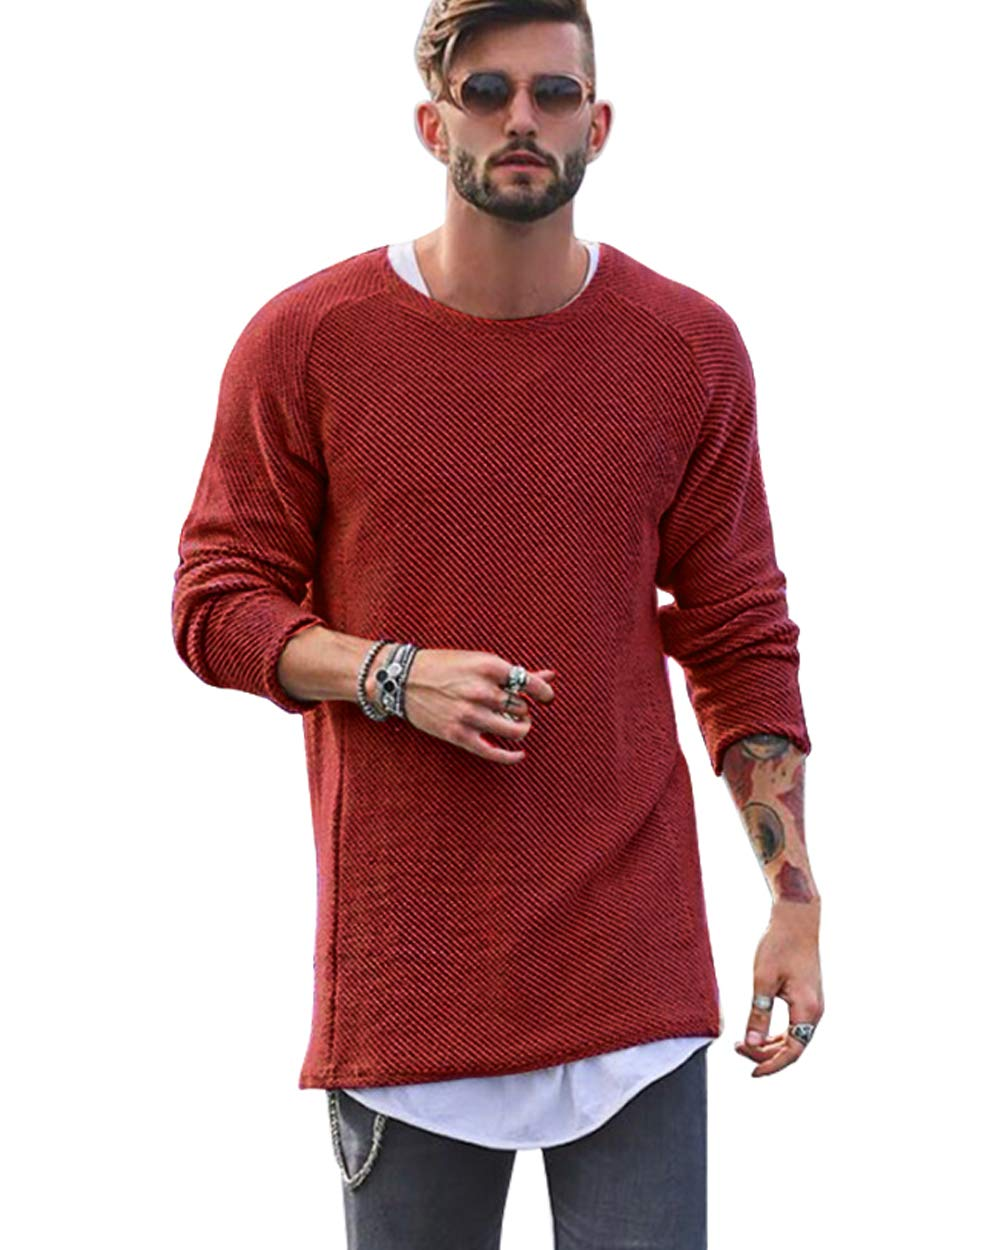 The Aron ONE Men's Fashion Casual Slim Knitted Long Sleeve Round Neck Hip-Hop Solid Color Pullover Sweater Jumper T-Shirt Tops